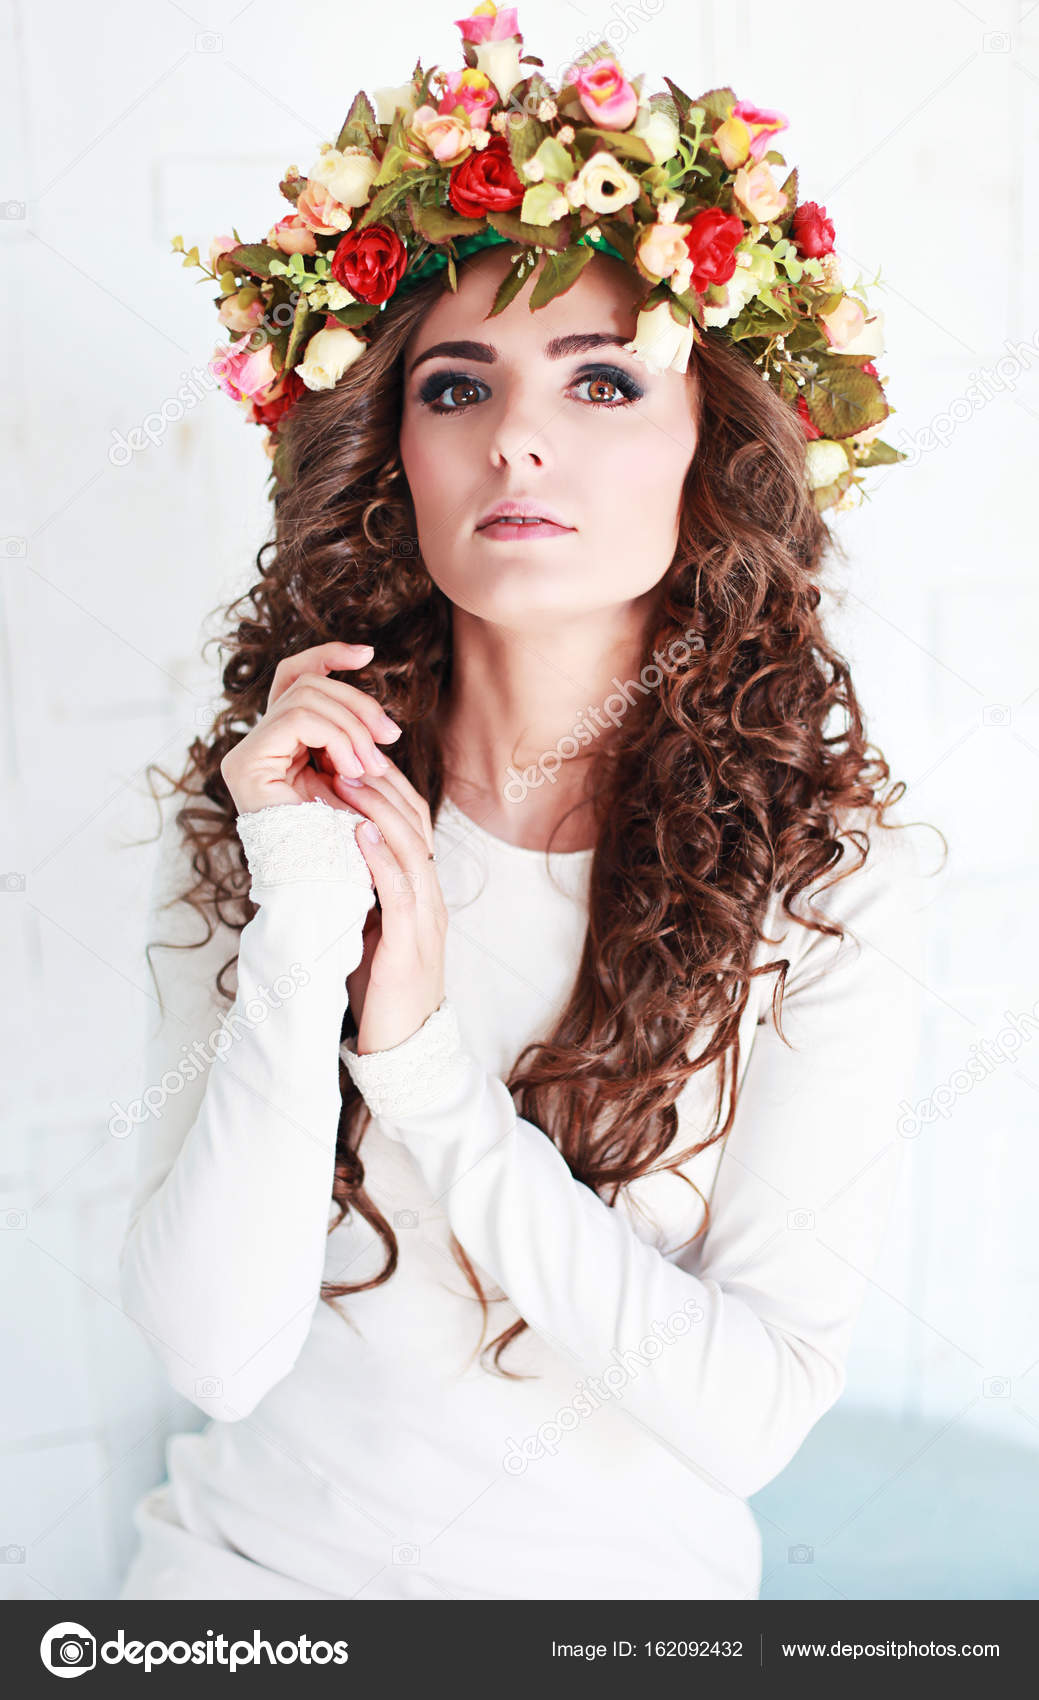 Beautiful woman with flower crown stock photo mewithoutyou beautiful woman with flower crown bohemian style photo by mewithoutyou izmirmasajfo